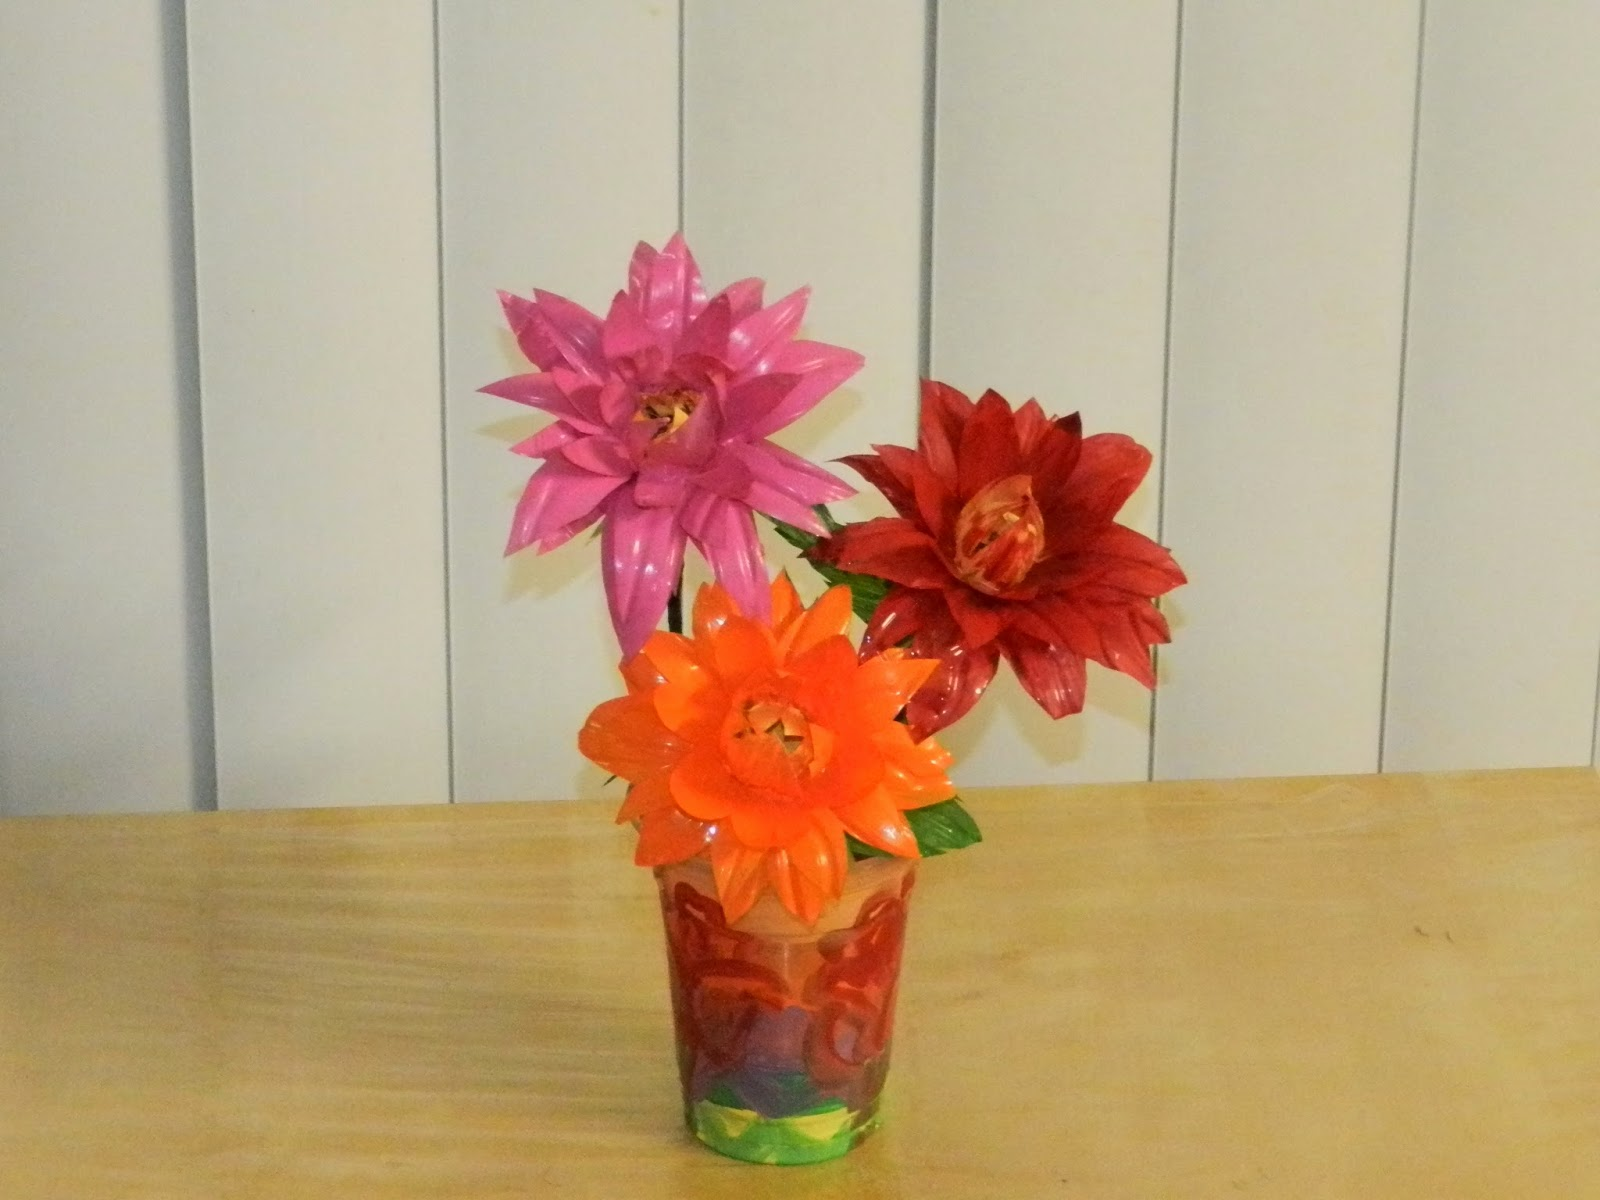 Creative diy crafts dahlia flowers with waste water bottles creative diy crafts reviewsmspy